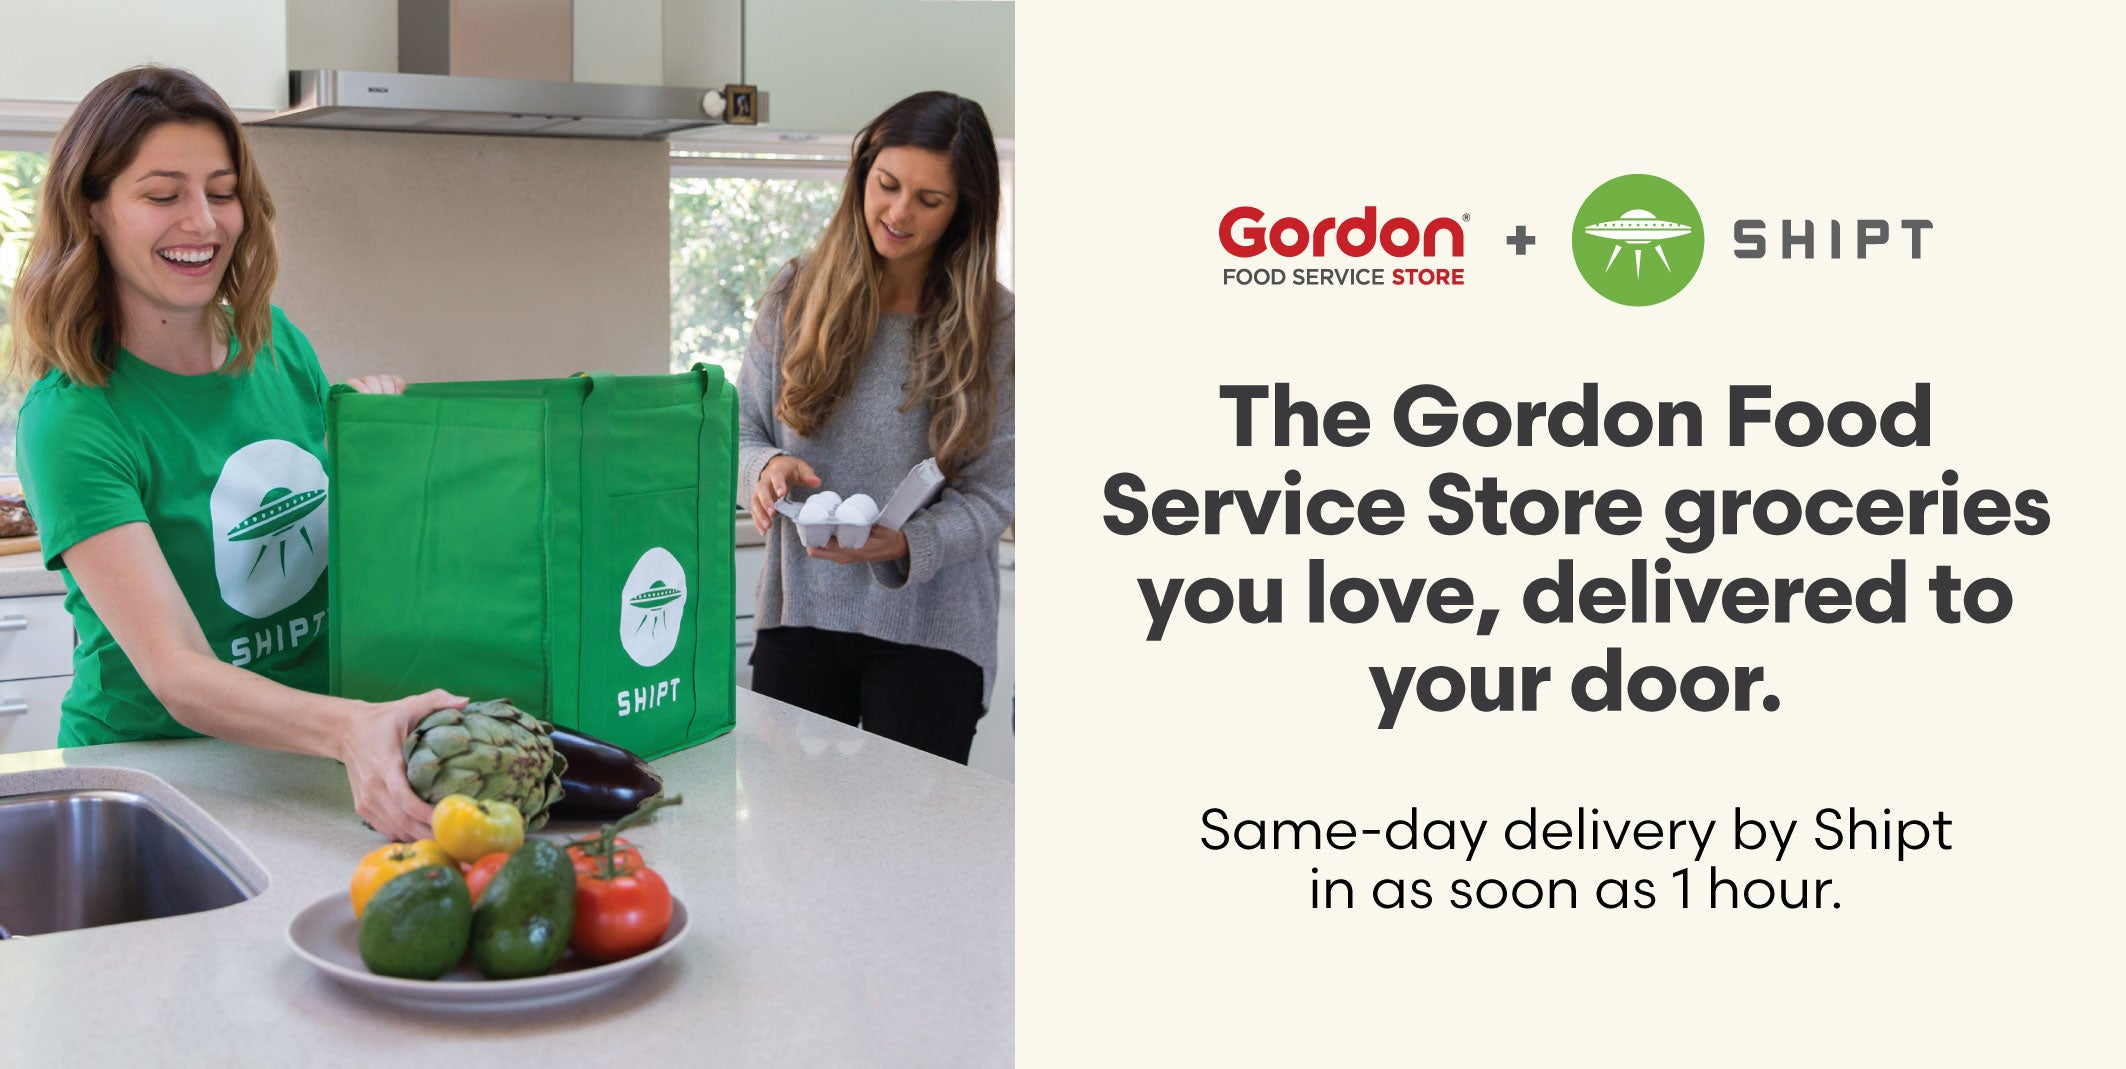 The Gordon Food Service Store groceries you love, delivered to your door. Same-day delivery by Shipt in as soon as 1 hour.